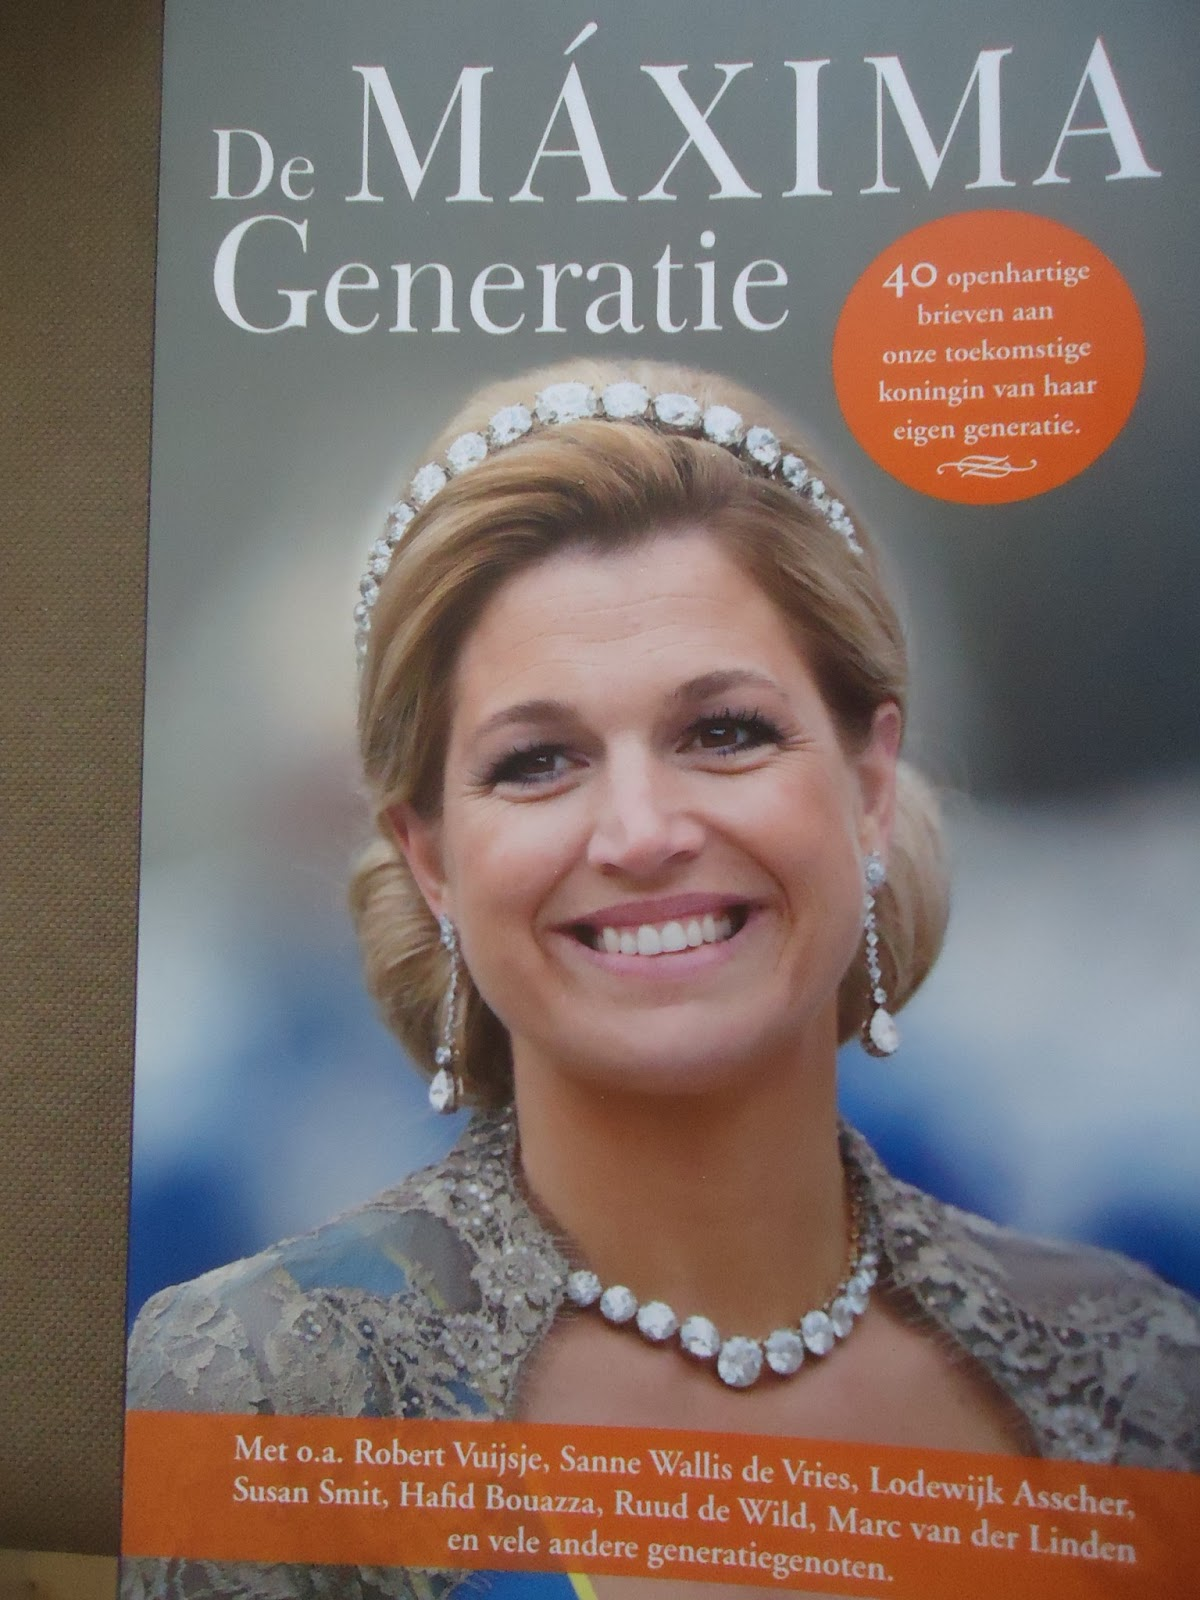 all about royal families books tv programs internet sites willem alexander van prins tot koning from prince to king